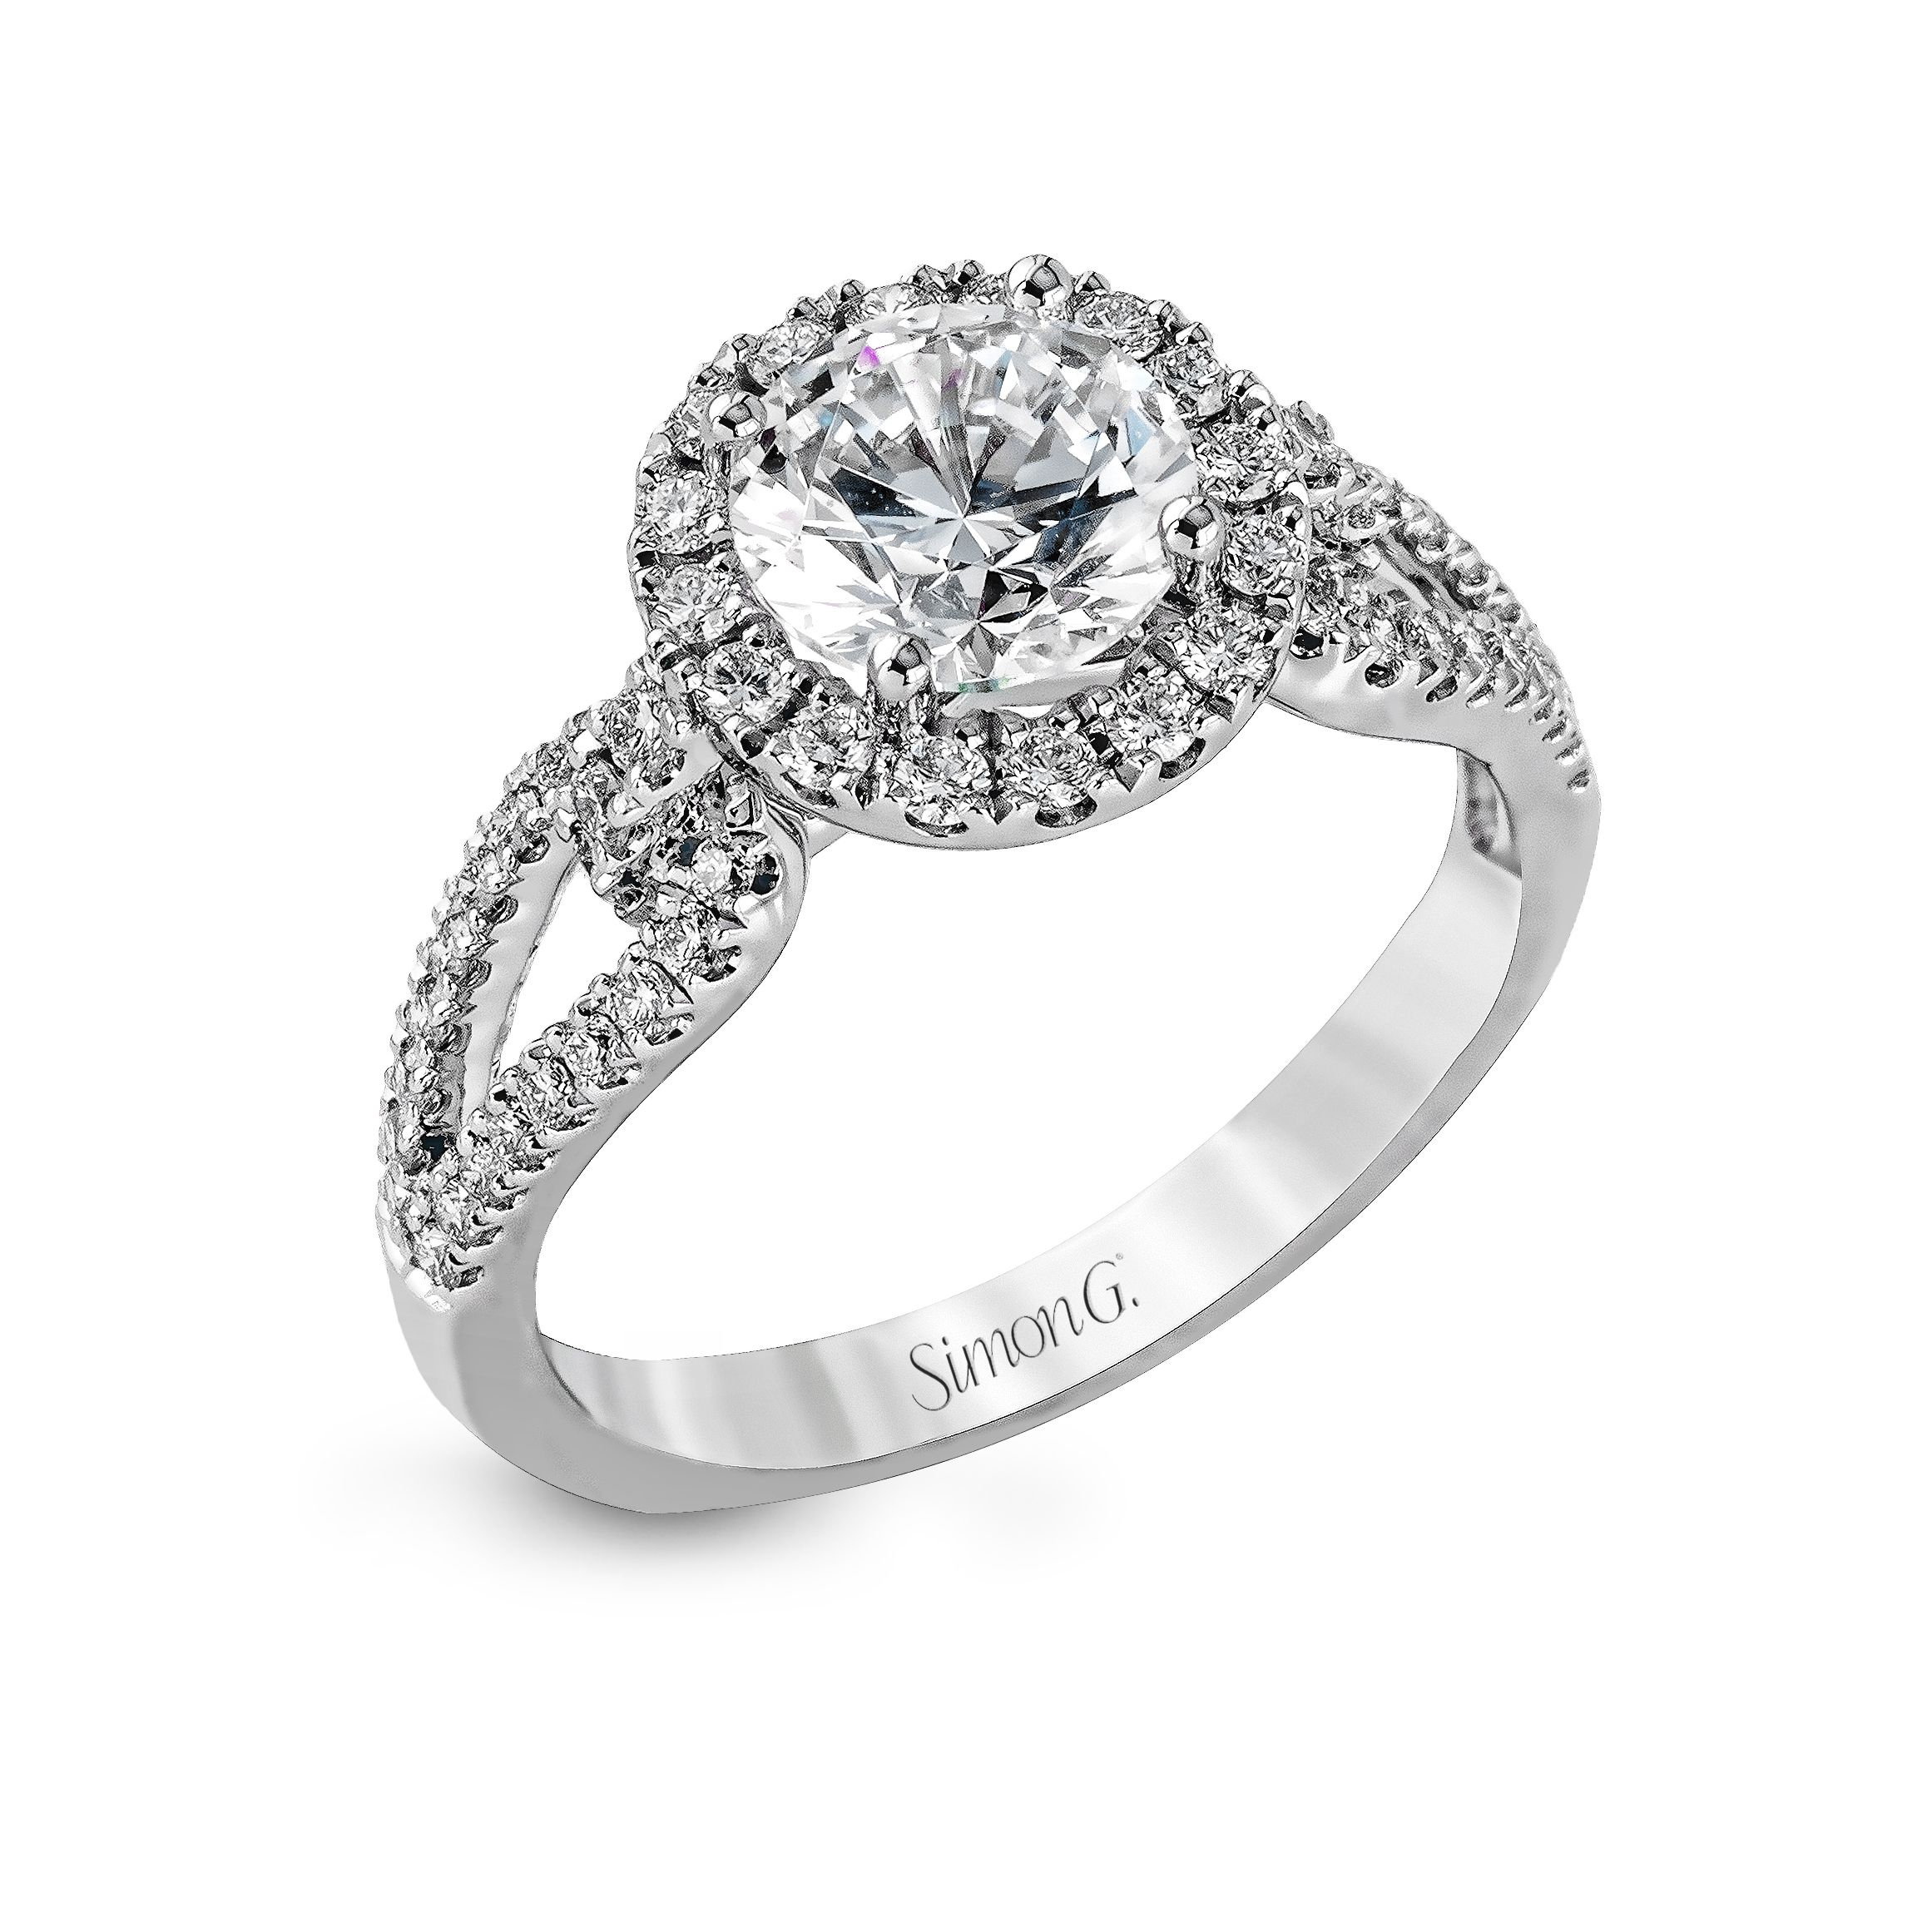 more product d mariani engagement simon category g rings oakville her jewellers for read